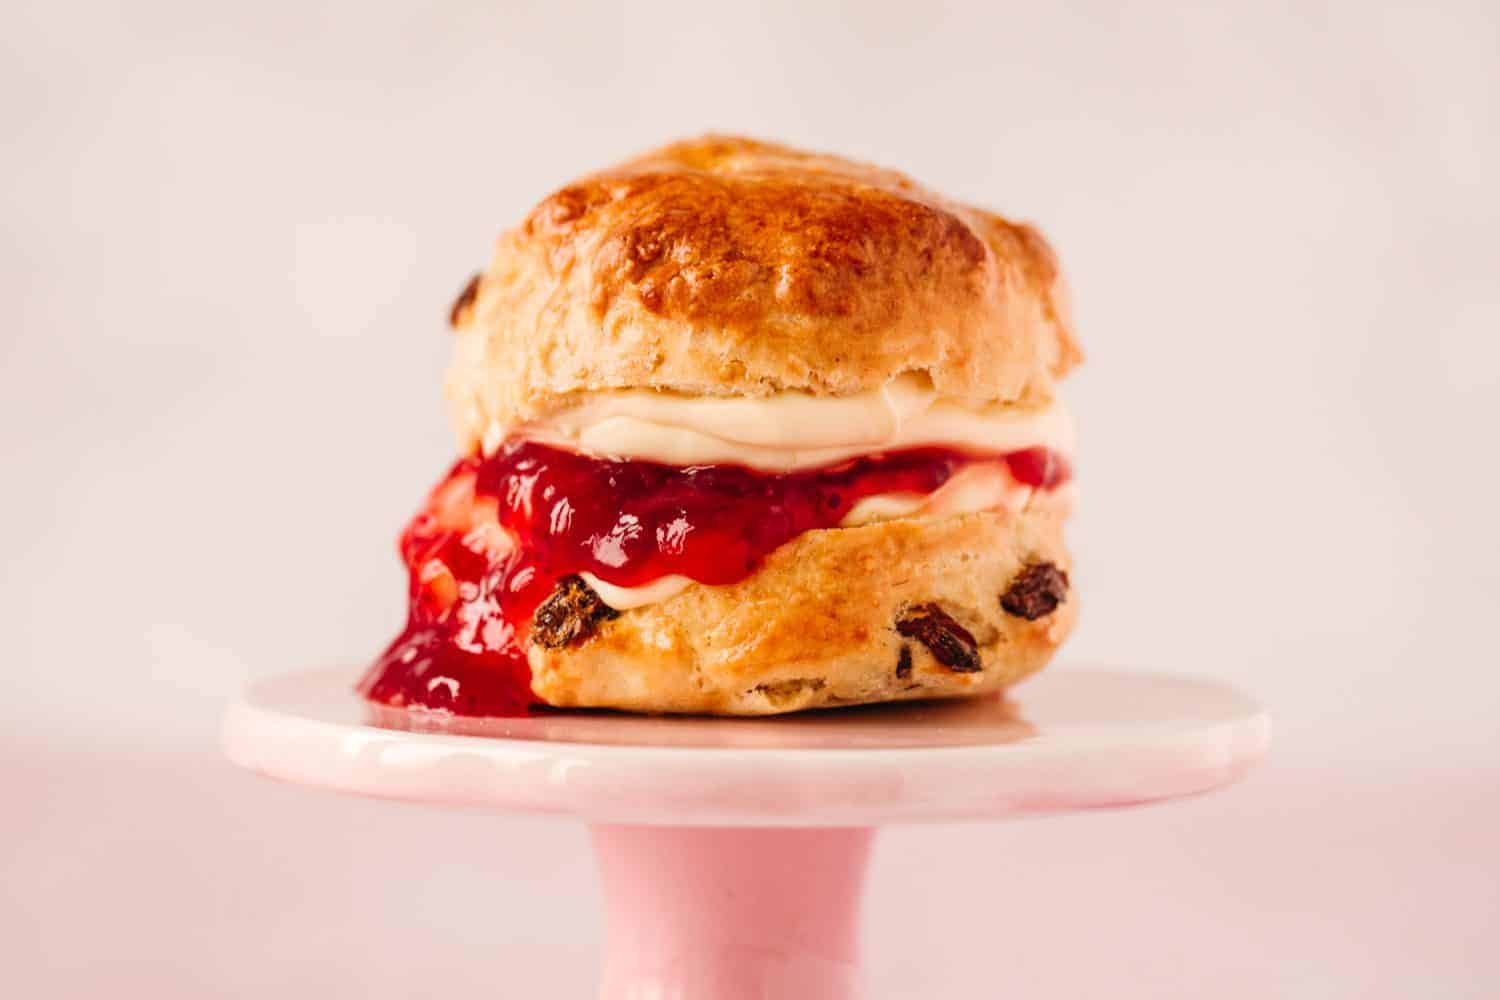 Profile image of a scone on a pink cake stand with a pale pink background.